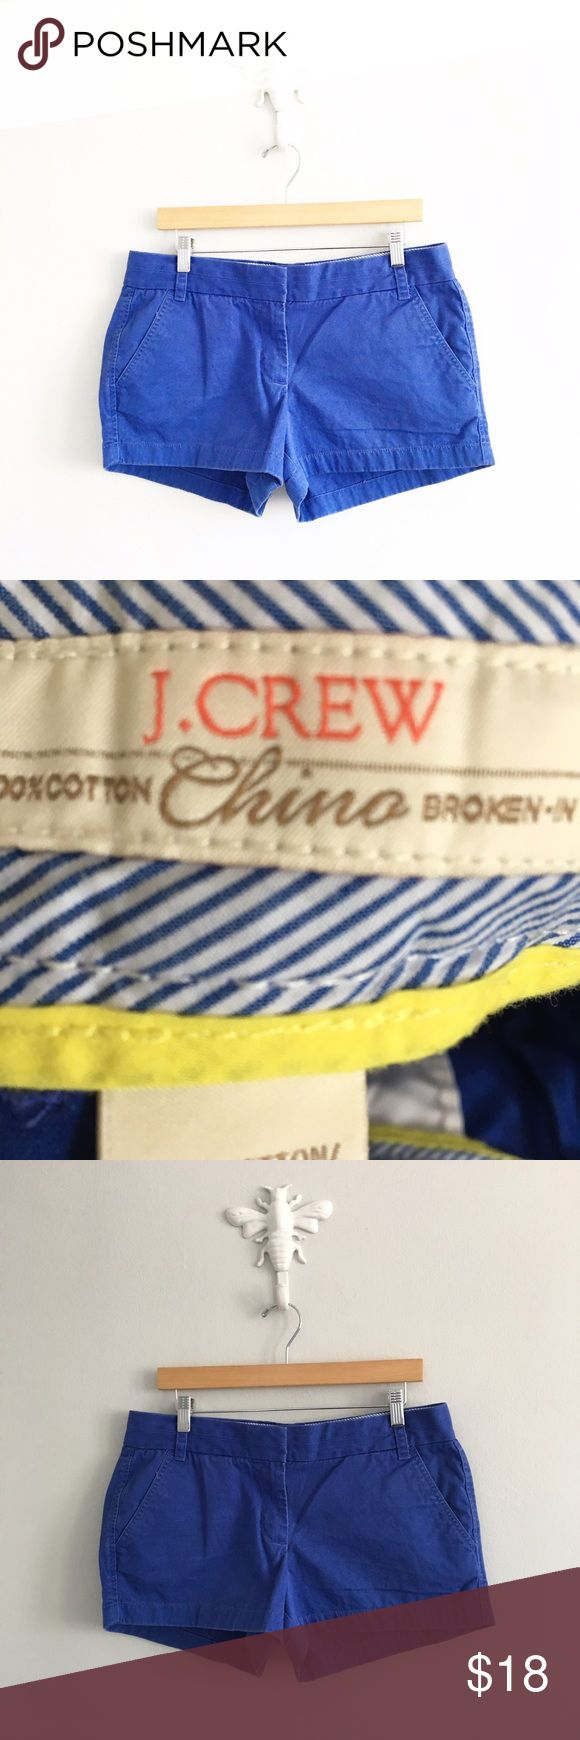 "J. Crew Cobalt Blue Broken In Cotton Chino Shorts 100% cotton. Waist: 33"". Inseam: 3"". Gently pre-loved with no rips or stains. Please see all pictures for an accurate description of condition. *0517170150* J. Crew Shorts"